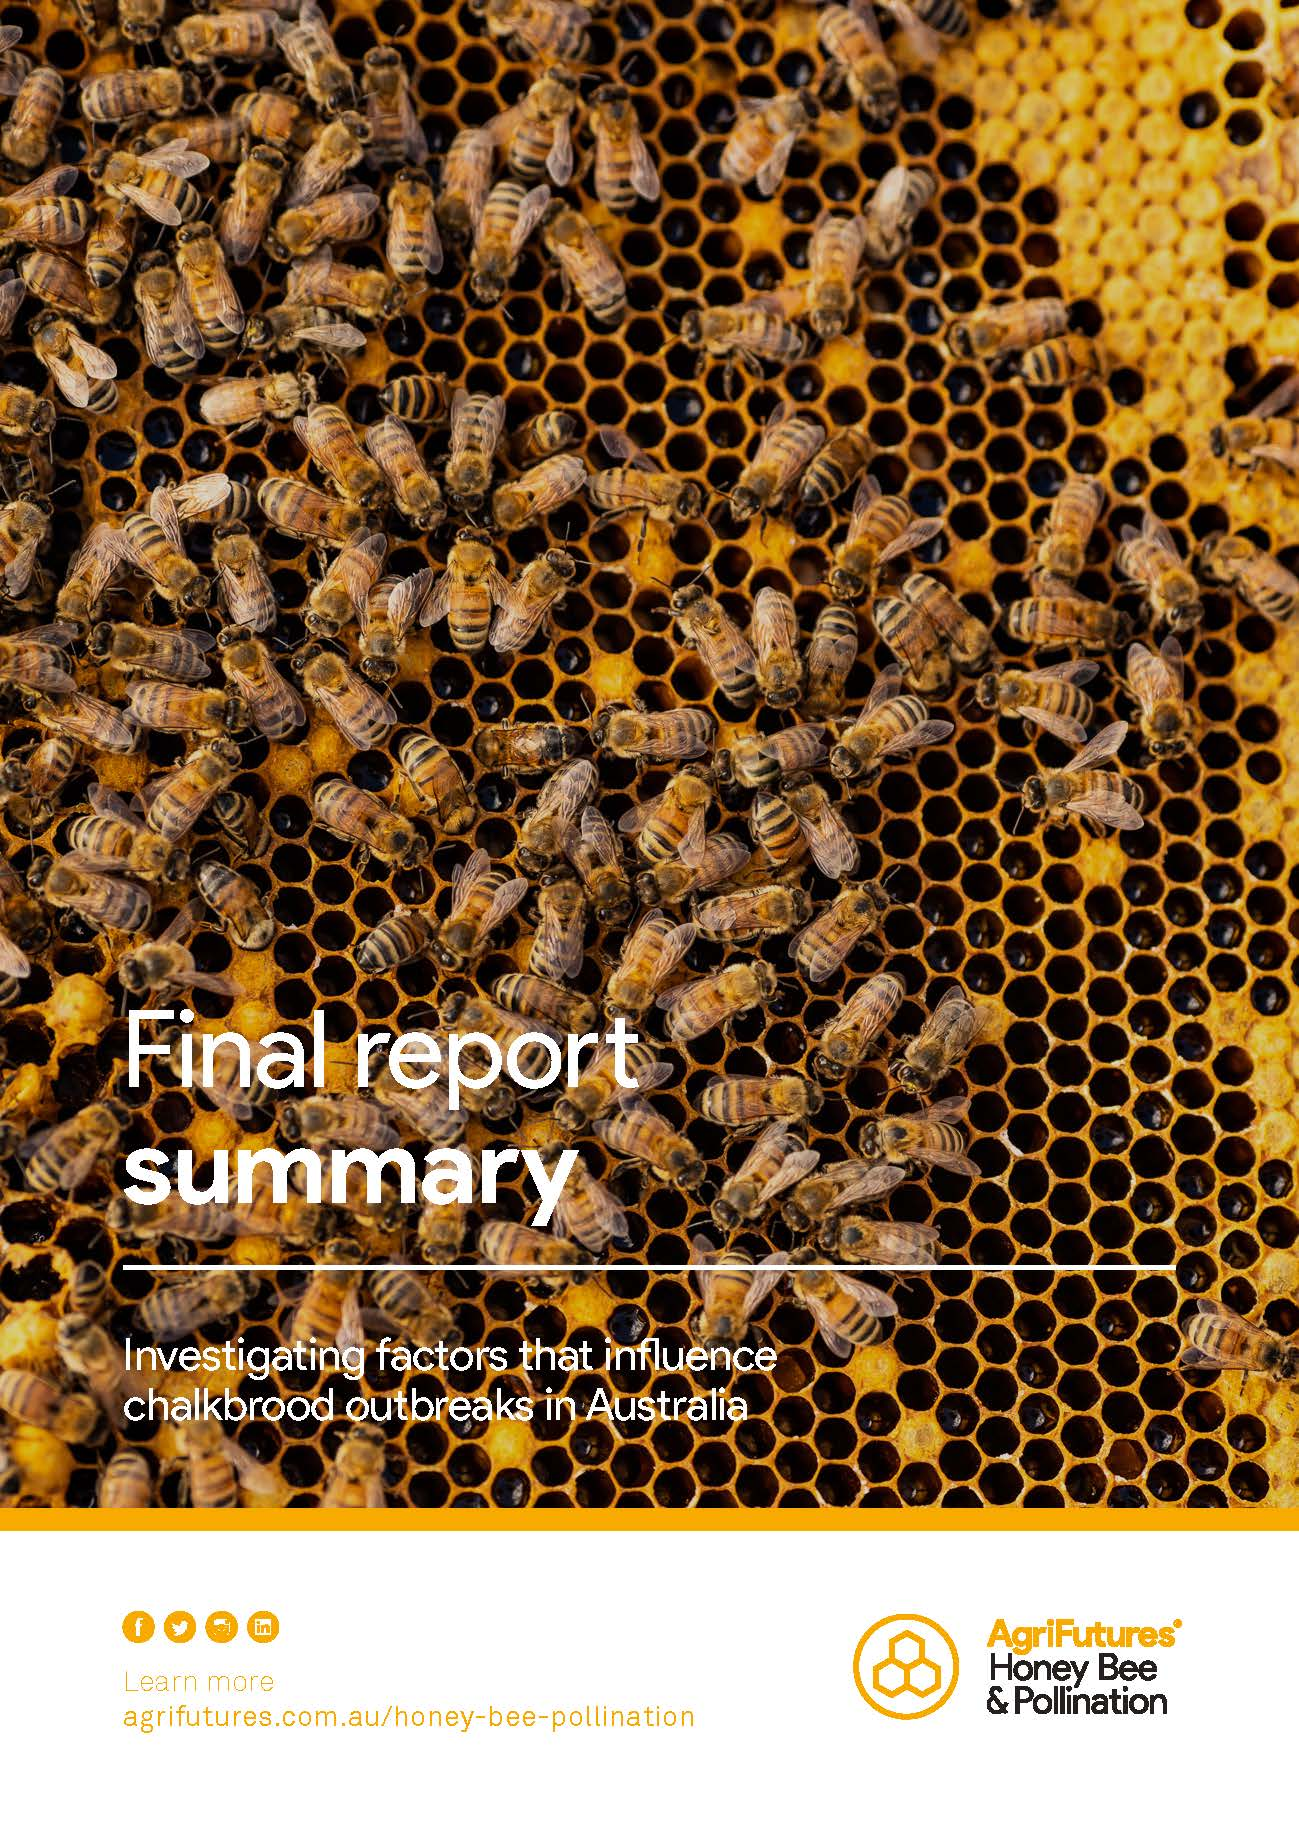 Final report summary: Investigating factors that influence chalkbrood outbreaks in Australia - image